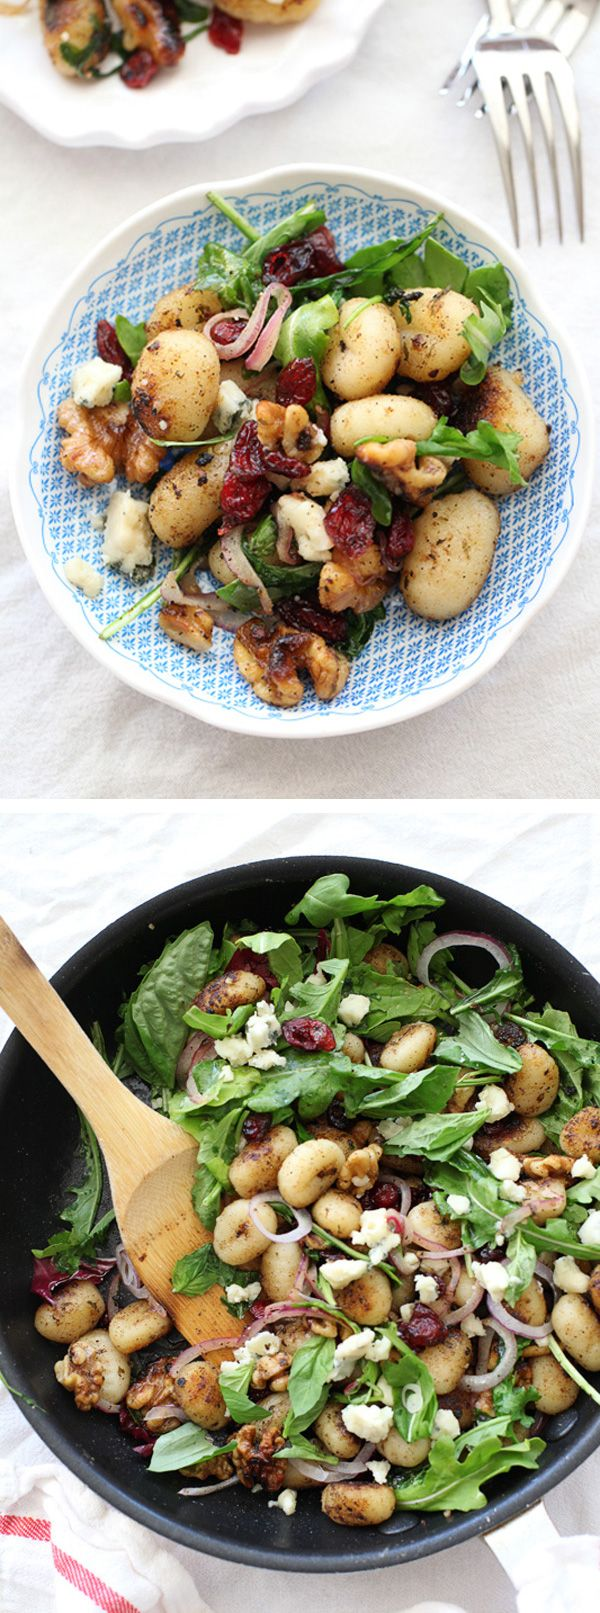 This savory salad is perfect for a meatless main or side dish | foodiecrush.com